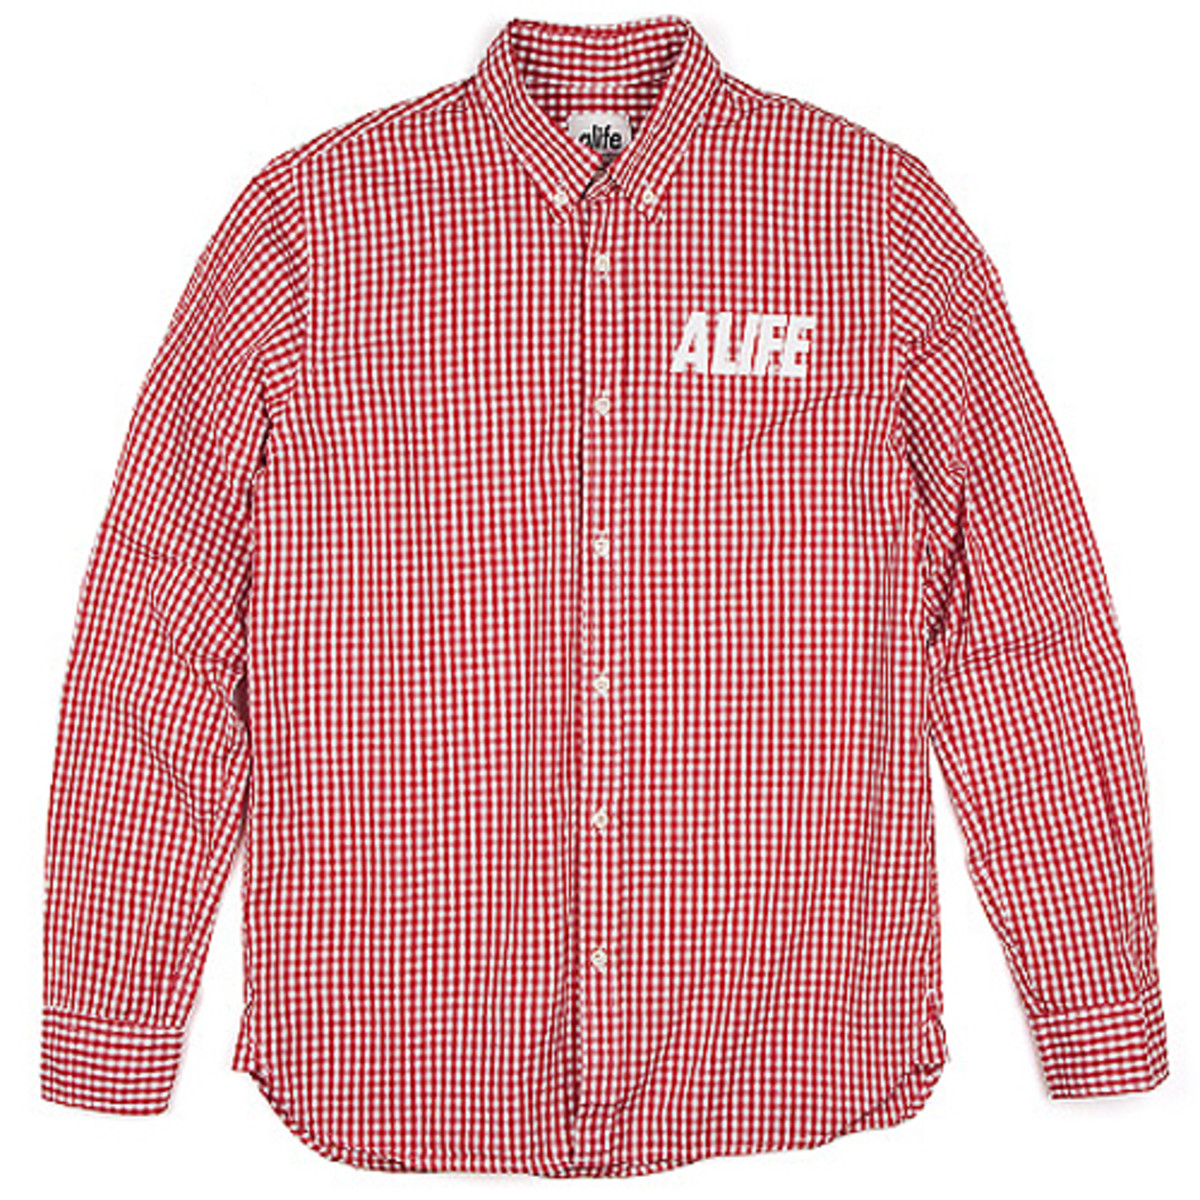 alife-spring-2010-button-down-shirt-04